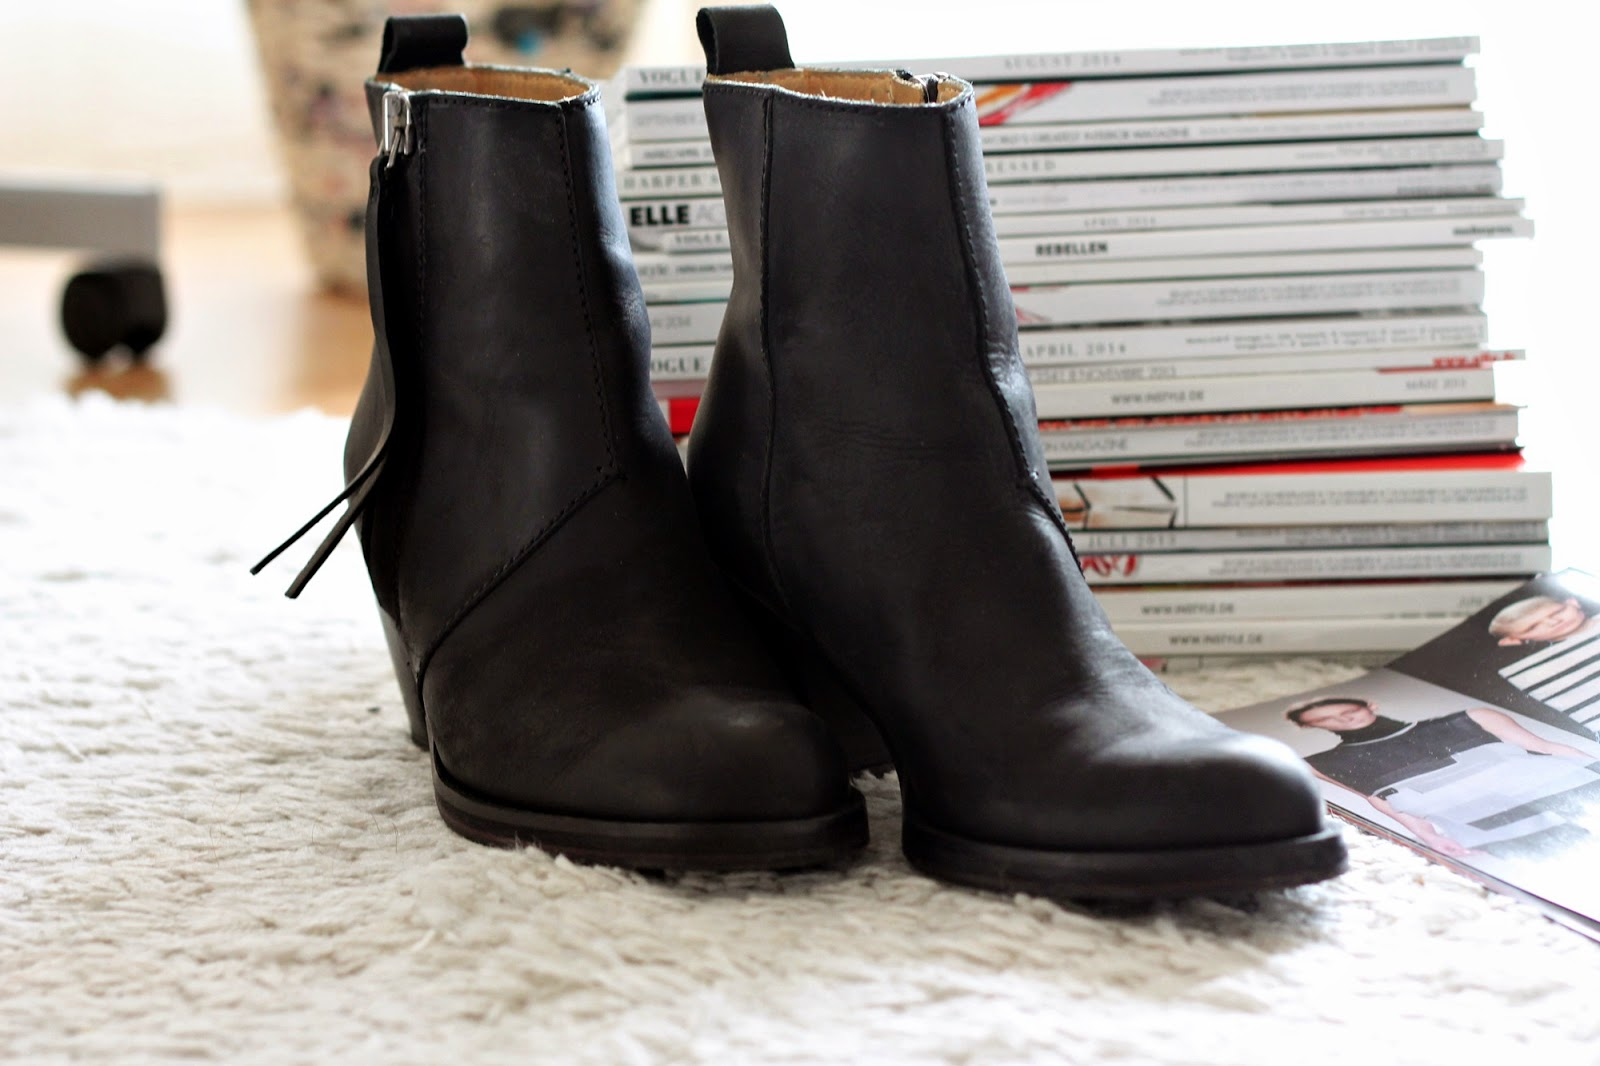 Acne Pistol Boots - Review